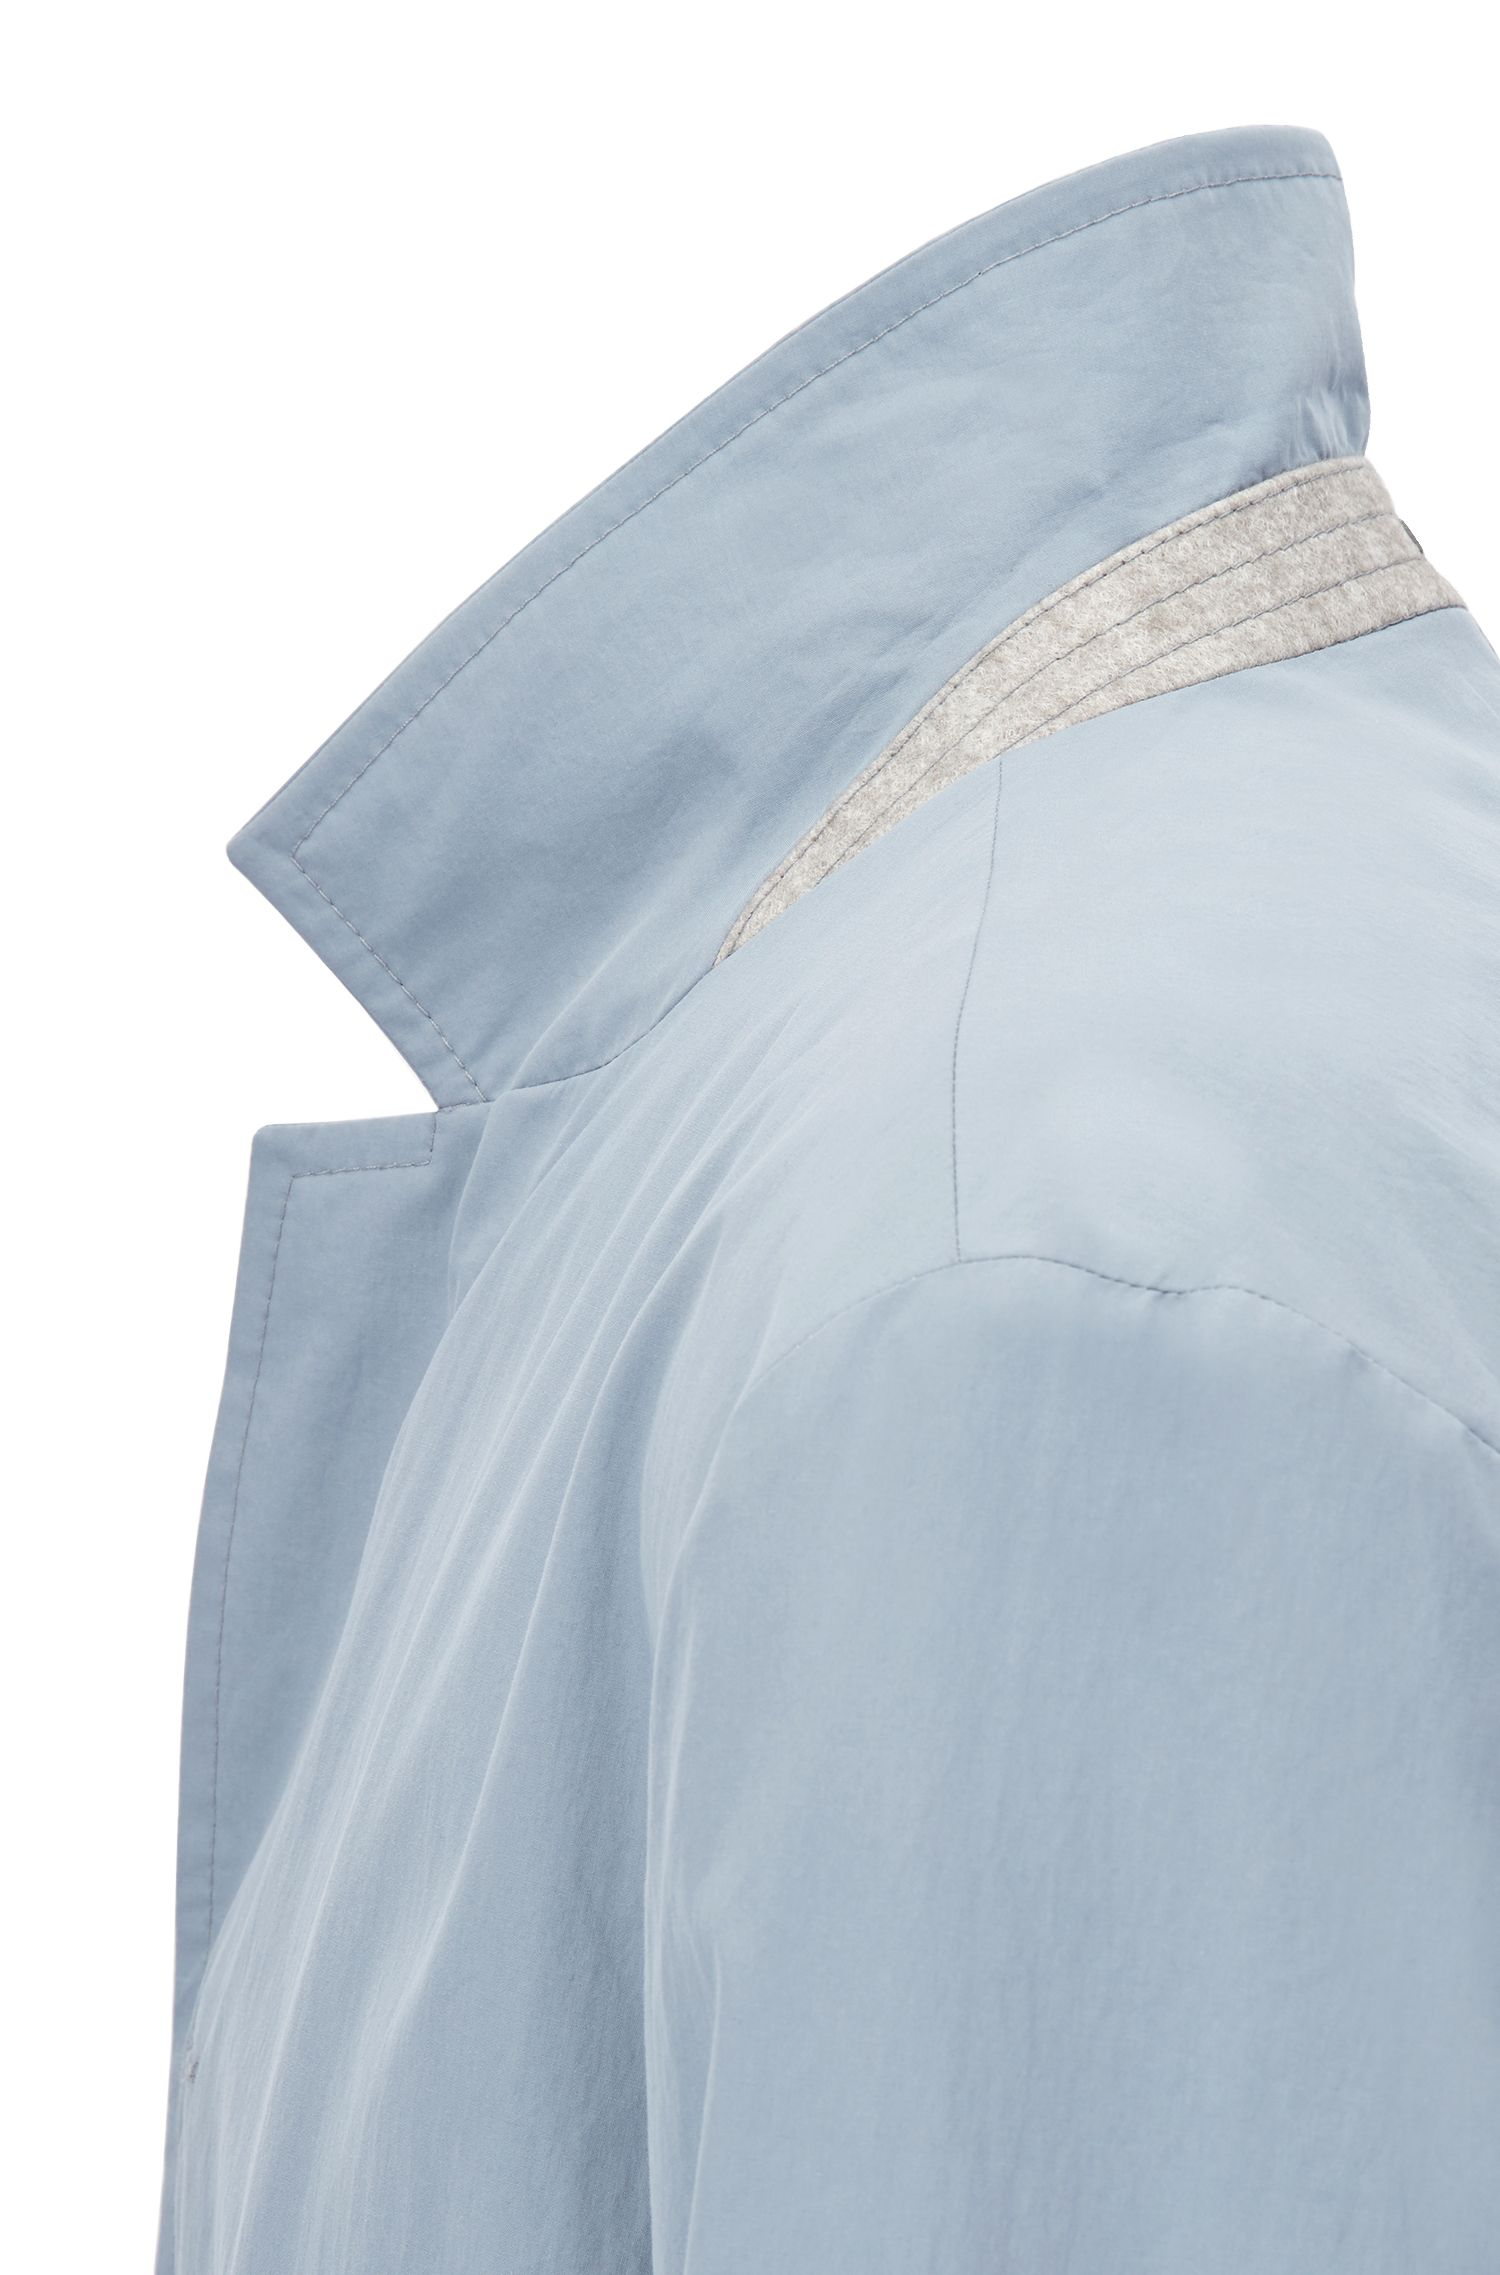 Lightweight cotton coat with a water-repellent finish